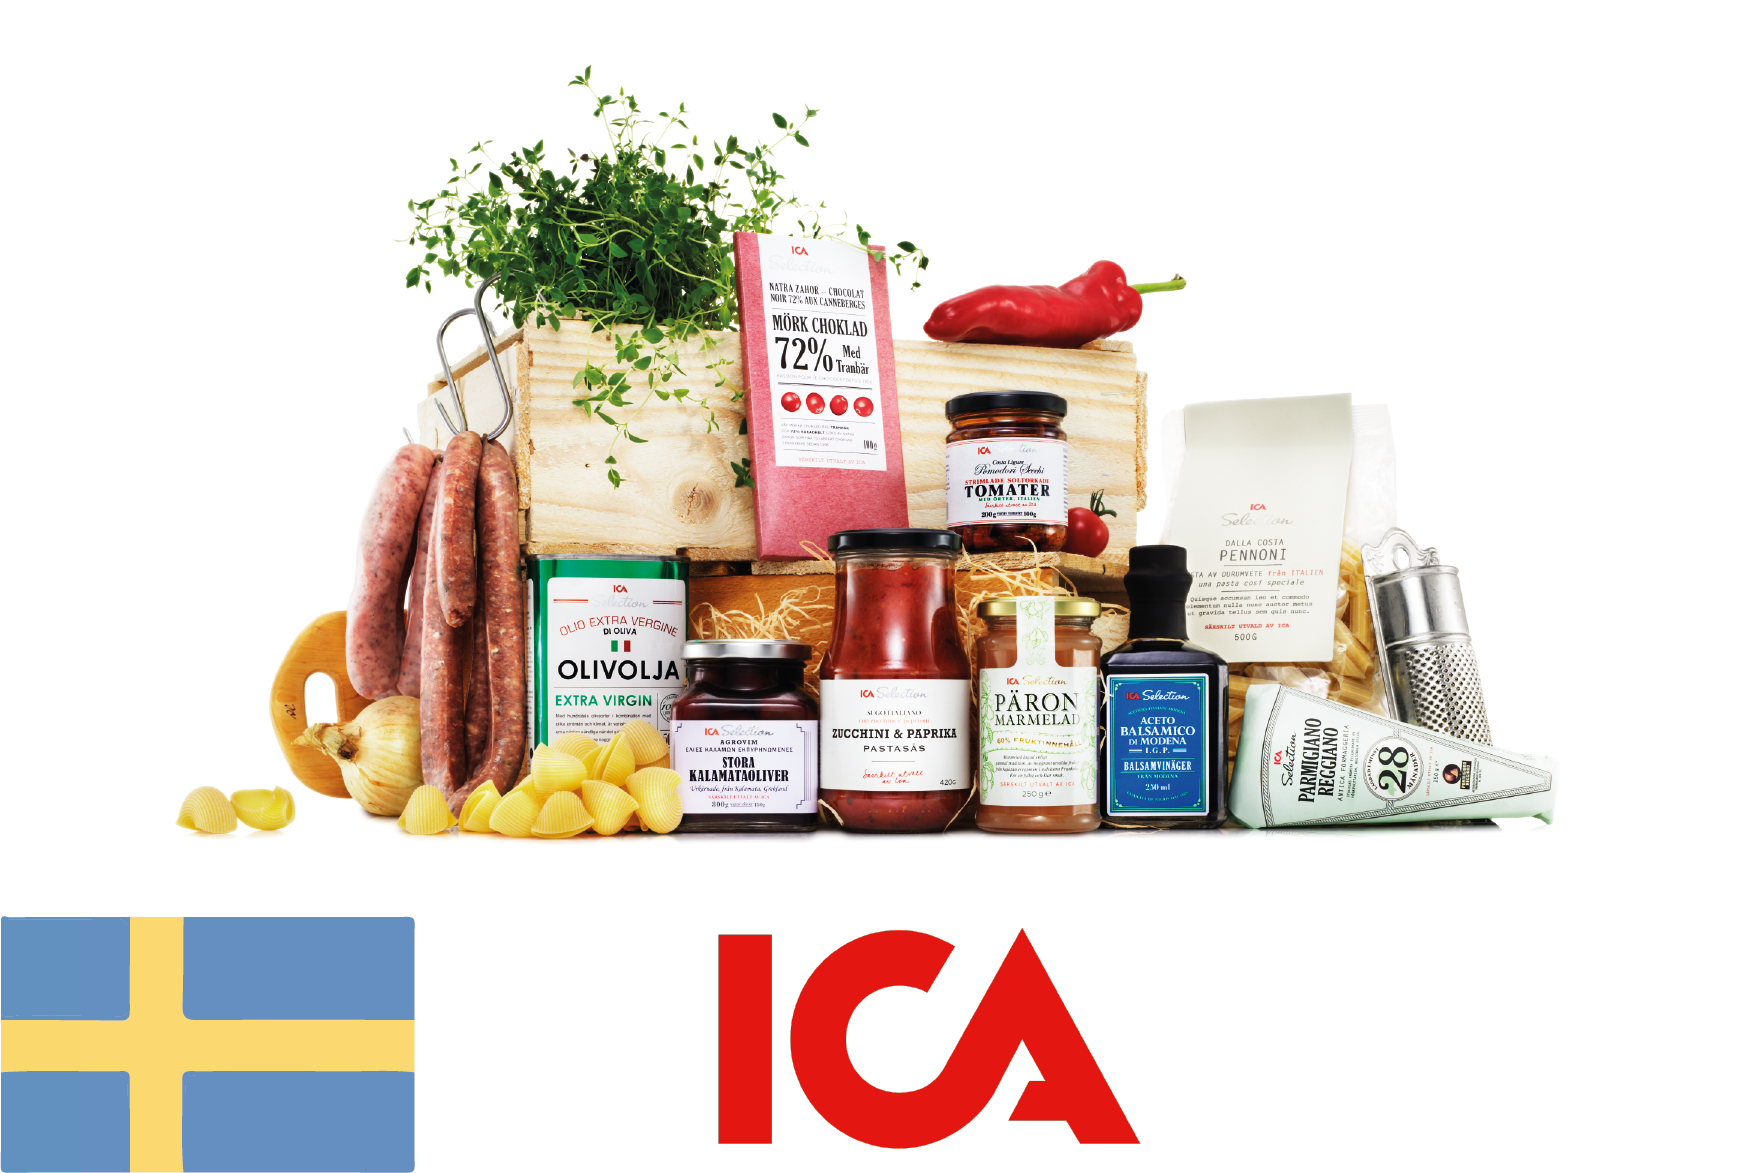 #48 ICA - Goodbye to single-use plastic products - CIRCit Nord